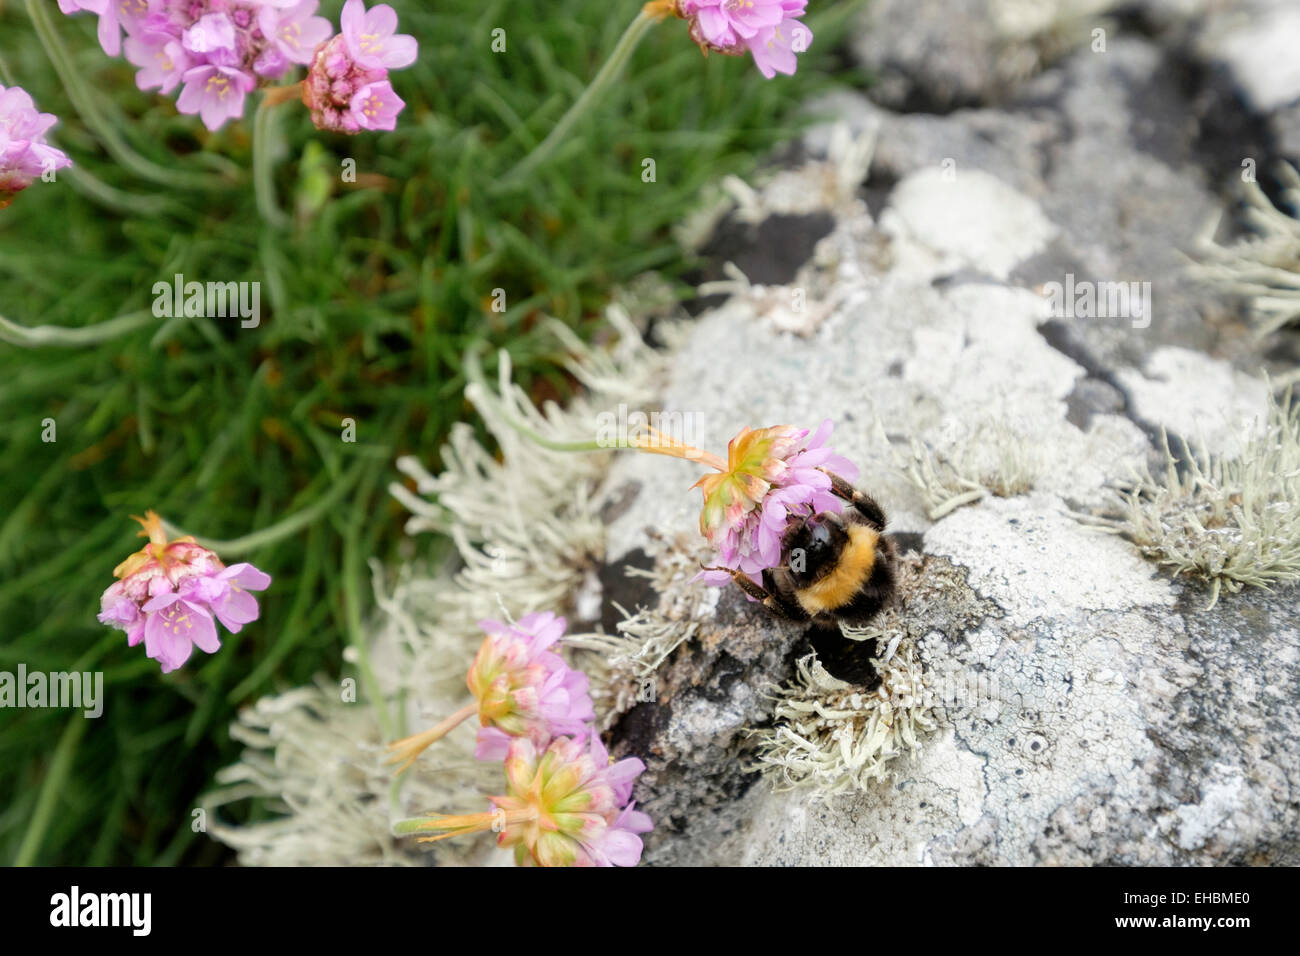 Bumble bee pollinating whilst feeding on nectar in Thrift or Sea Pink flower (Armeria maritima) growing by rocks. - Stock Image